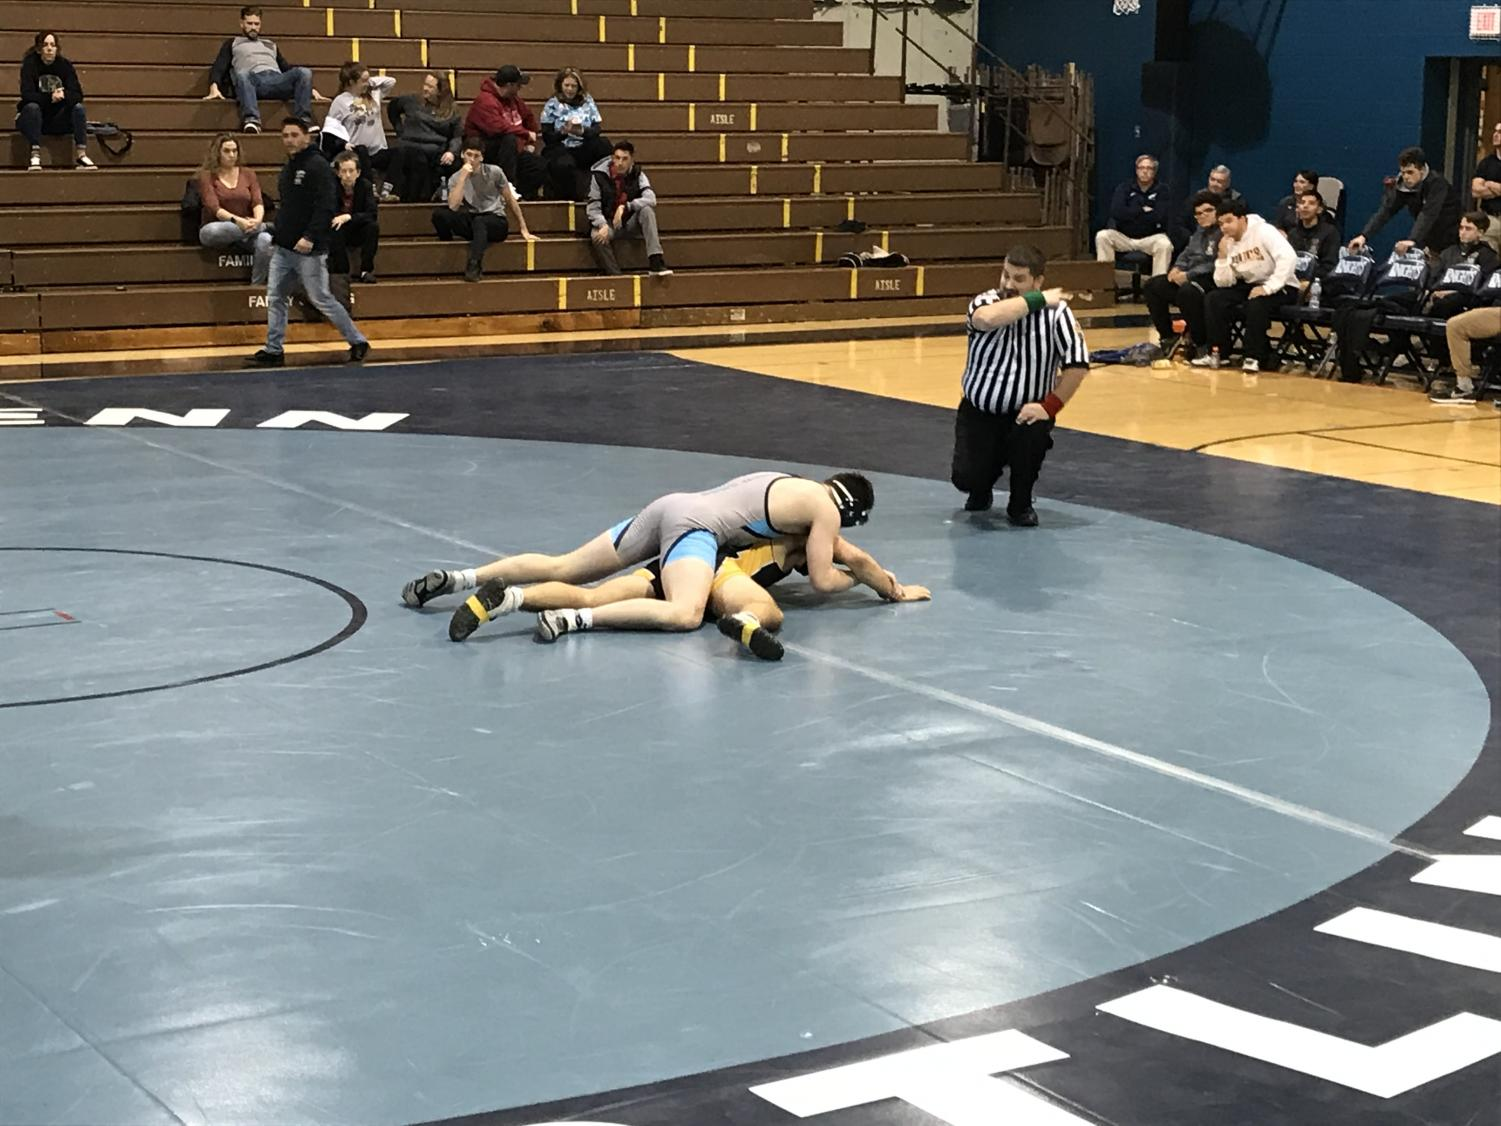 WRESTLING- North Penn and Interboro faced each other on December 20th, 2017 for an out of conference match up.